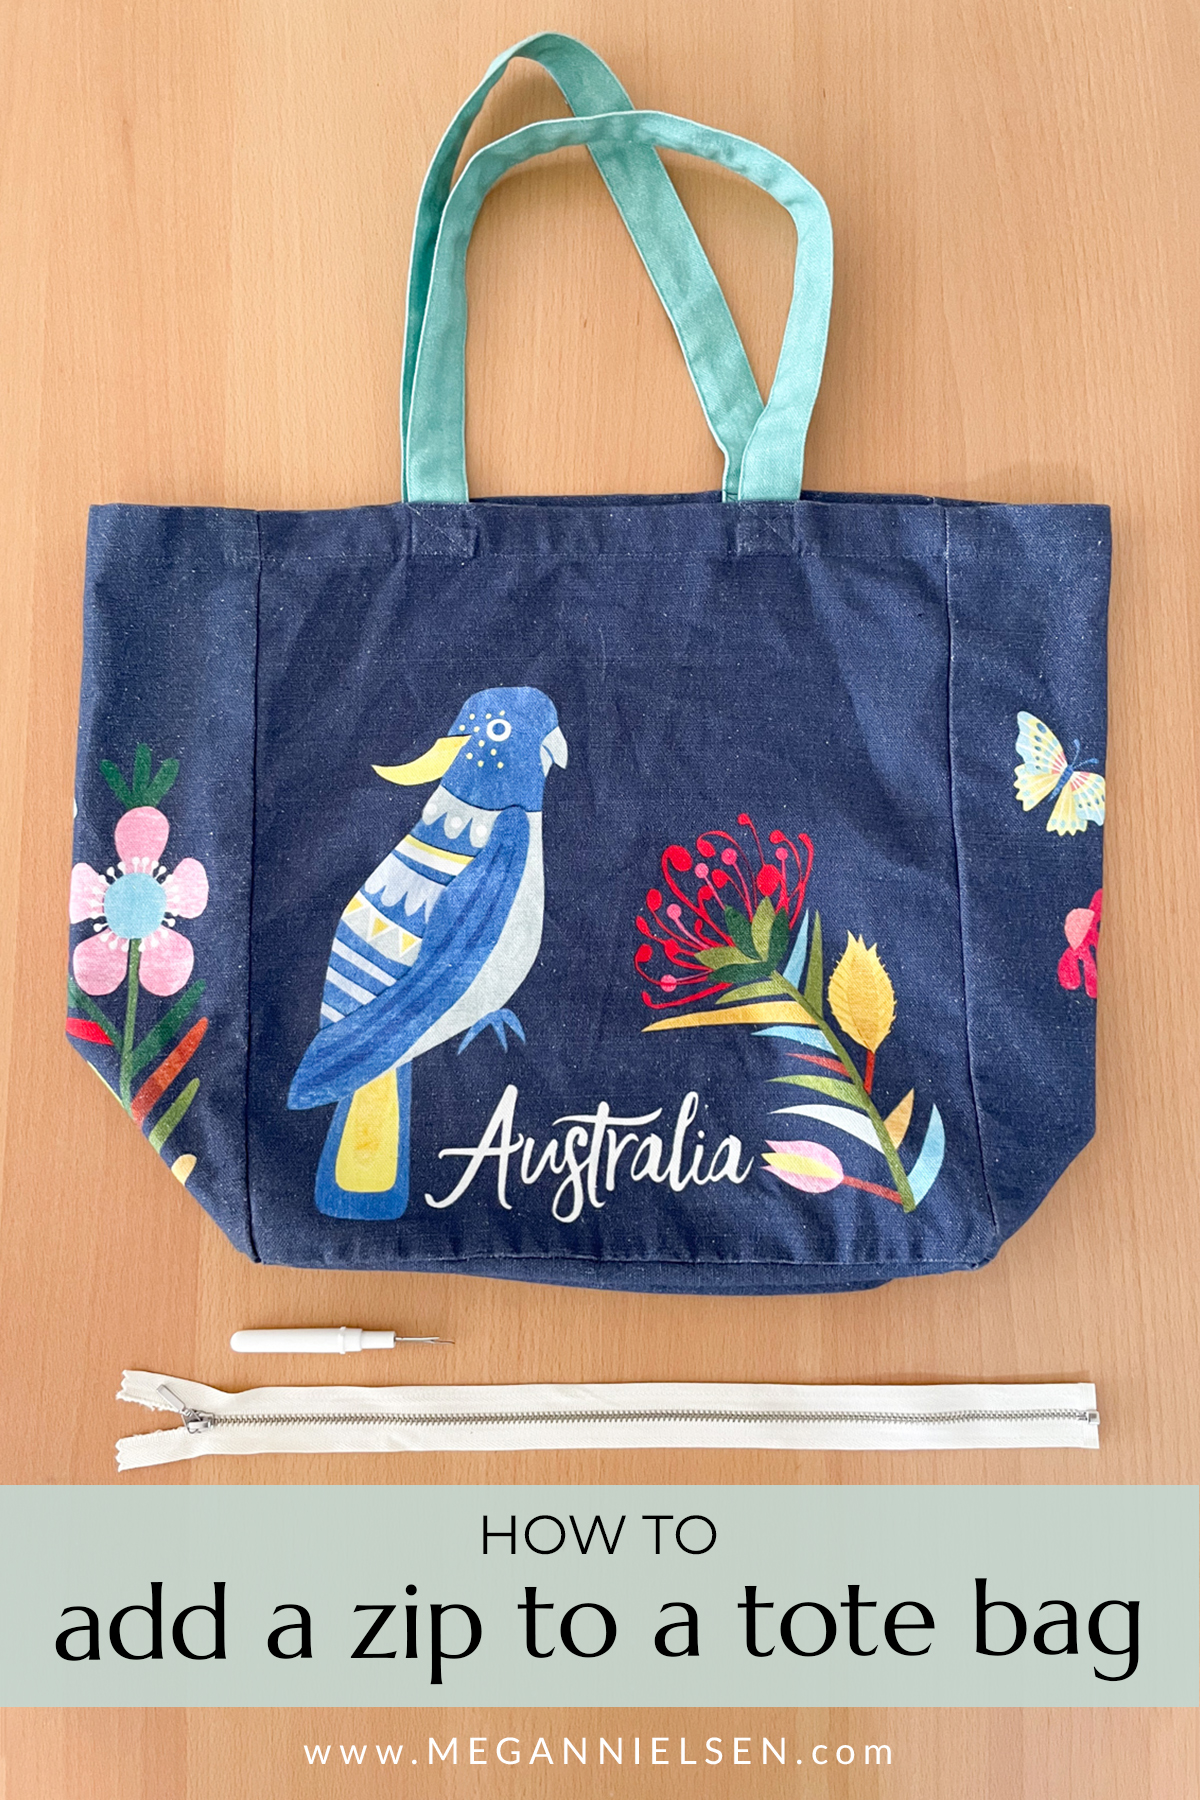 How to Add a Zip to a Tote Bag | Megan Nielsen Patterns Blog